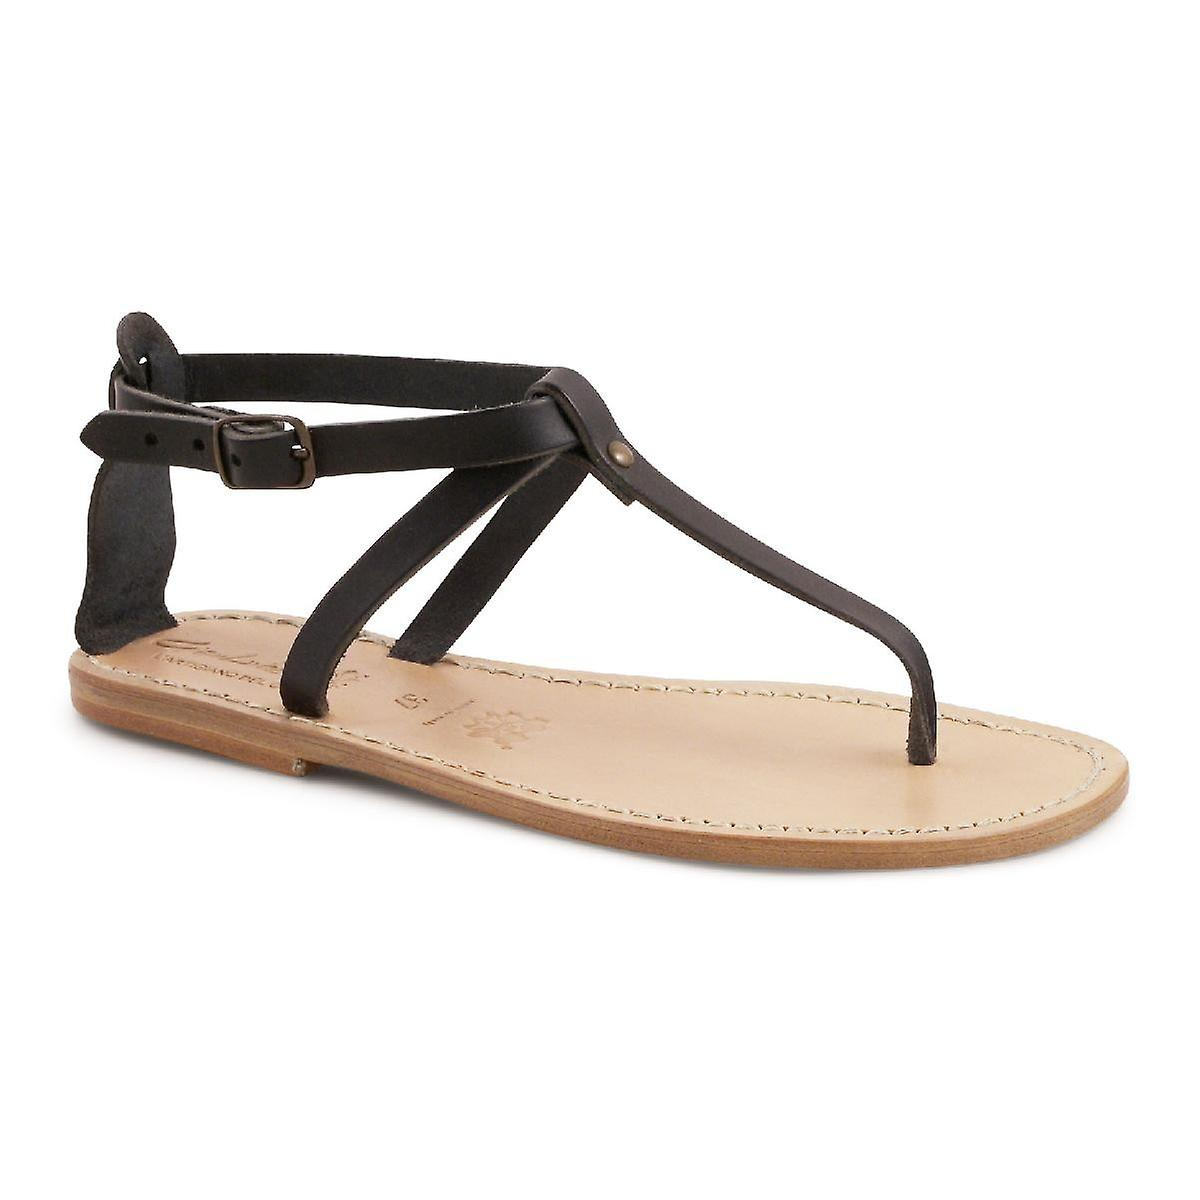 Handmade t-strap leather flat sandals for women 0RXjn